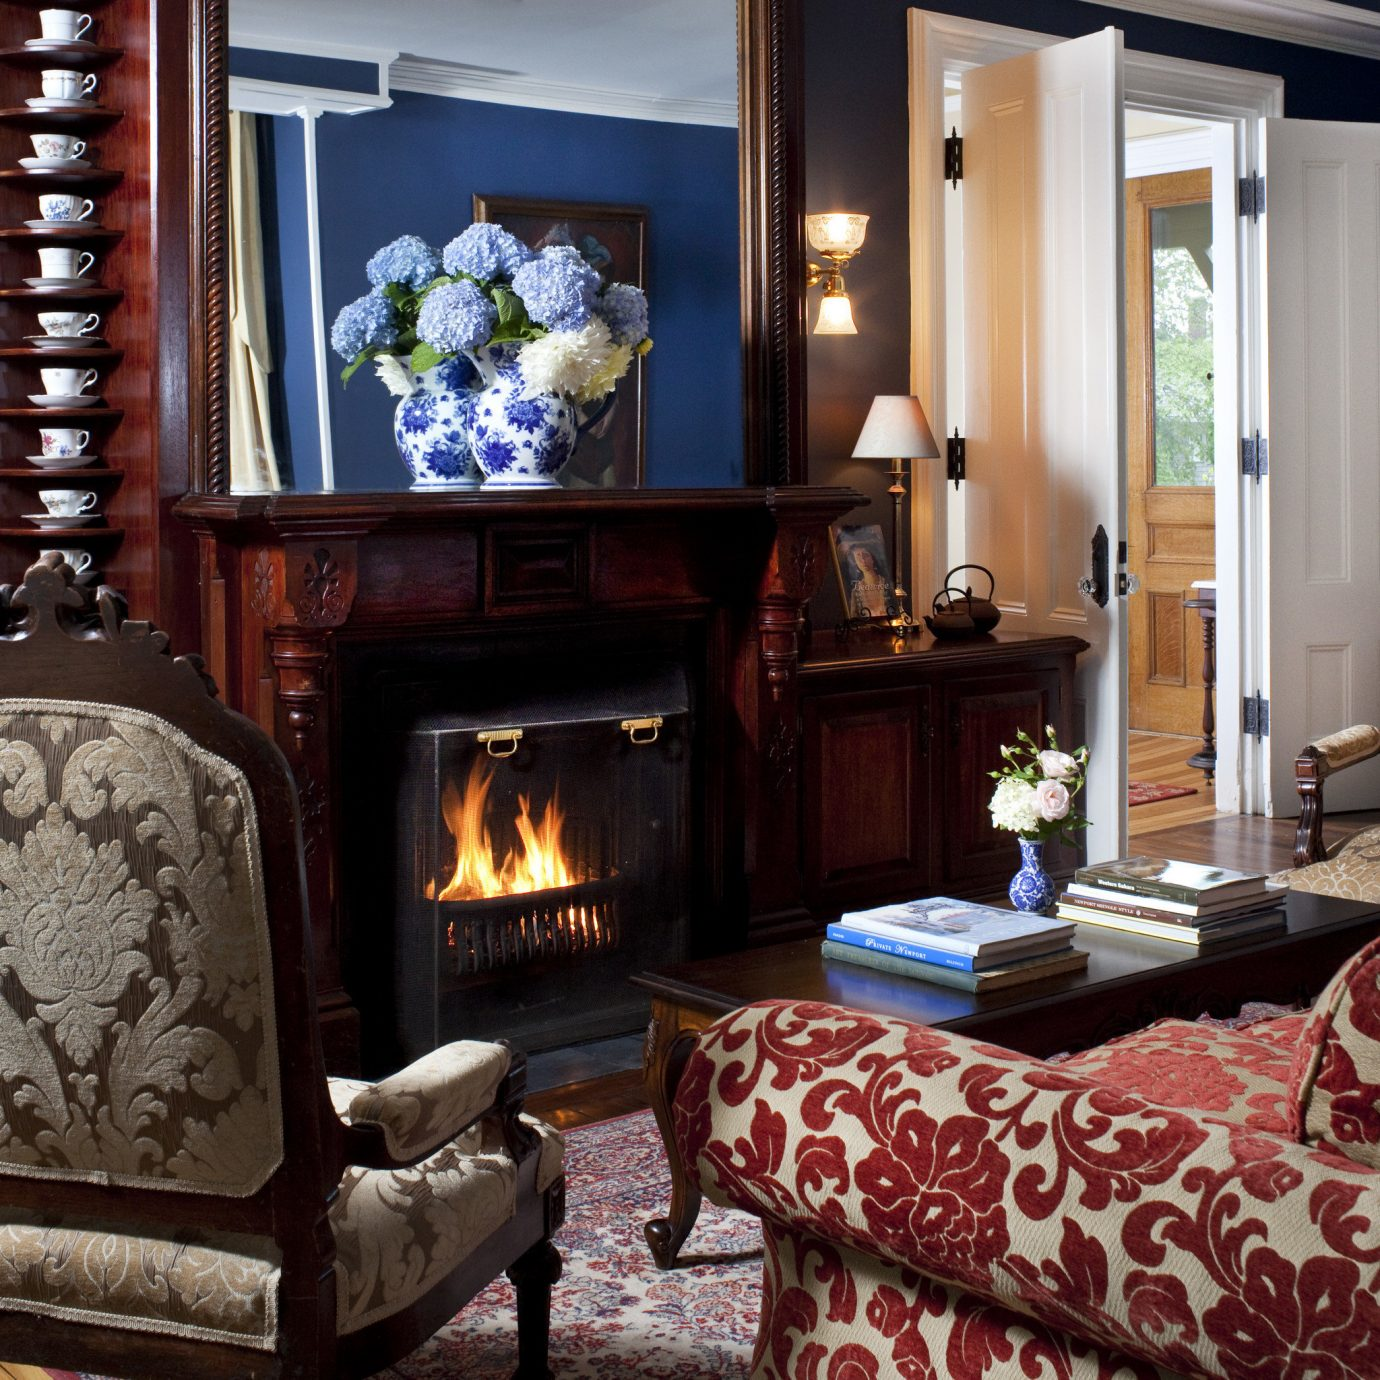 Boutique Hotels Hotels Romantic Getaways Romantic Hotels Fireplace living room fire home